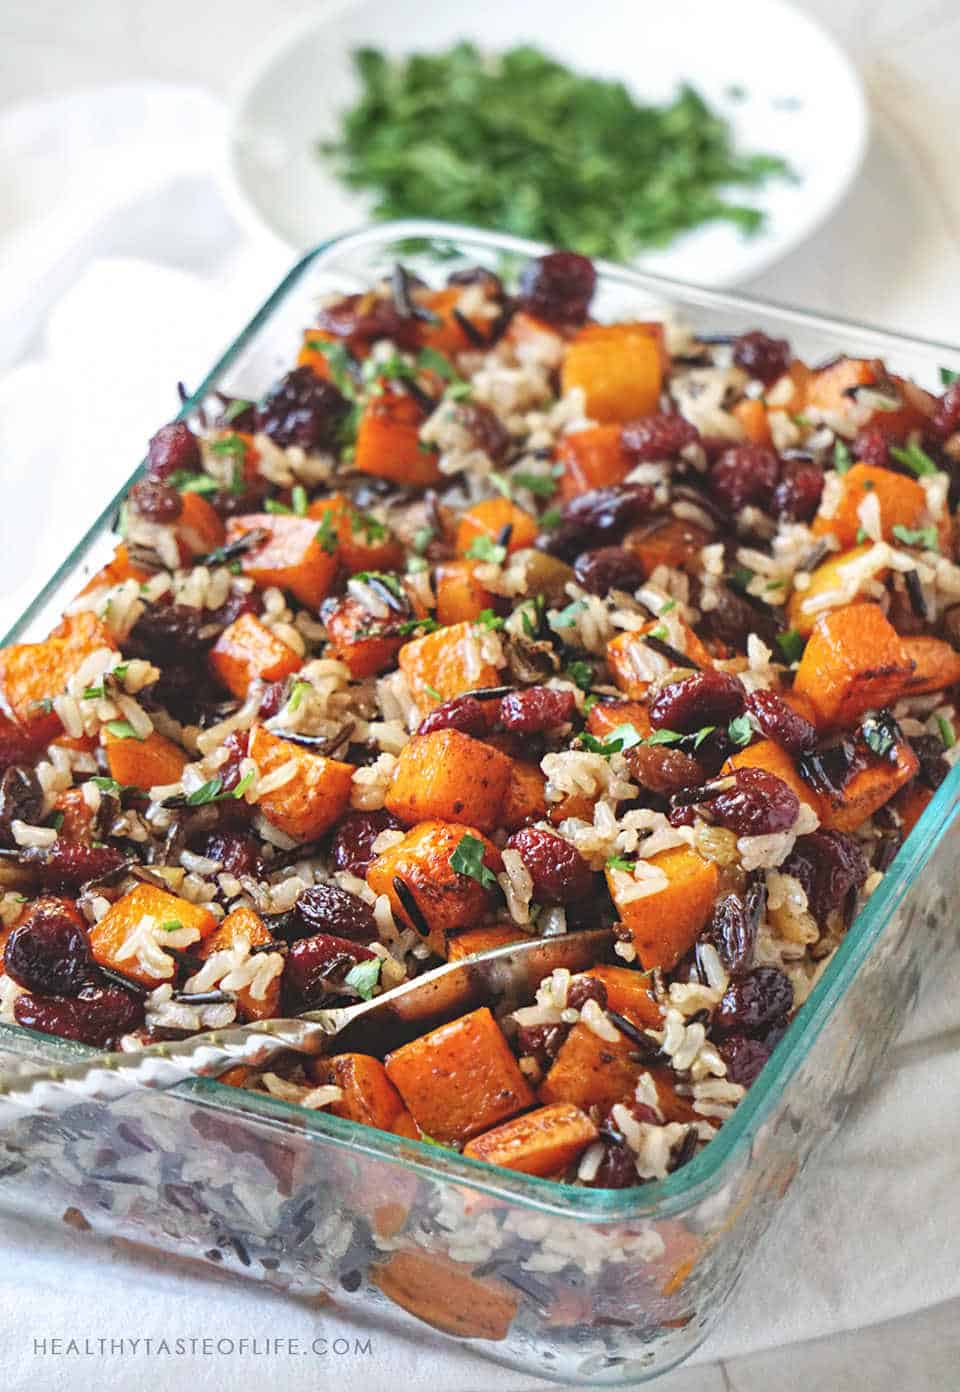 Vegan Butternut Squash Casserole with sweet potatoes and rice finished with a sweet balsamic sauce, perfect as a side dish or meal. This vegan butternut squash casserole is easy to make, full of flavor and it's naturally gluten free and dairy free! #butternutsquash #casserole  #vegan  #glutenfree  #sidedish #thanksgiving  #sweetpotatoes